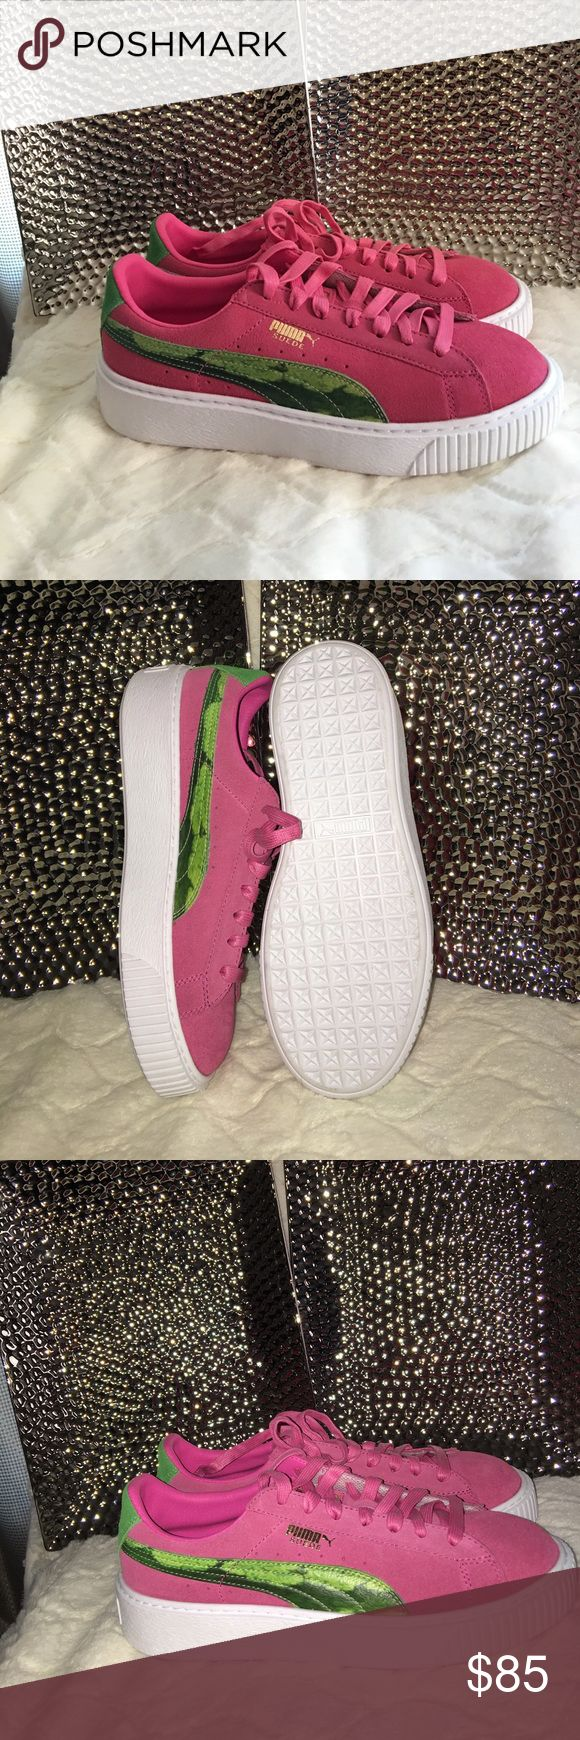 Puma tennis shoes Pink suede and lime green velvet Puma Shoes Sneakers